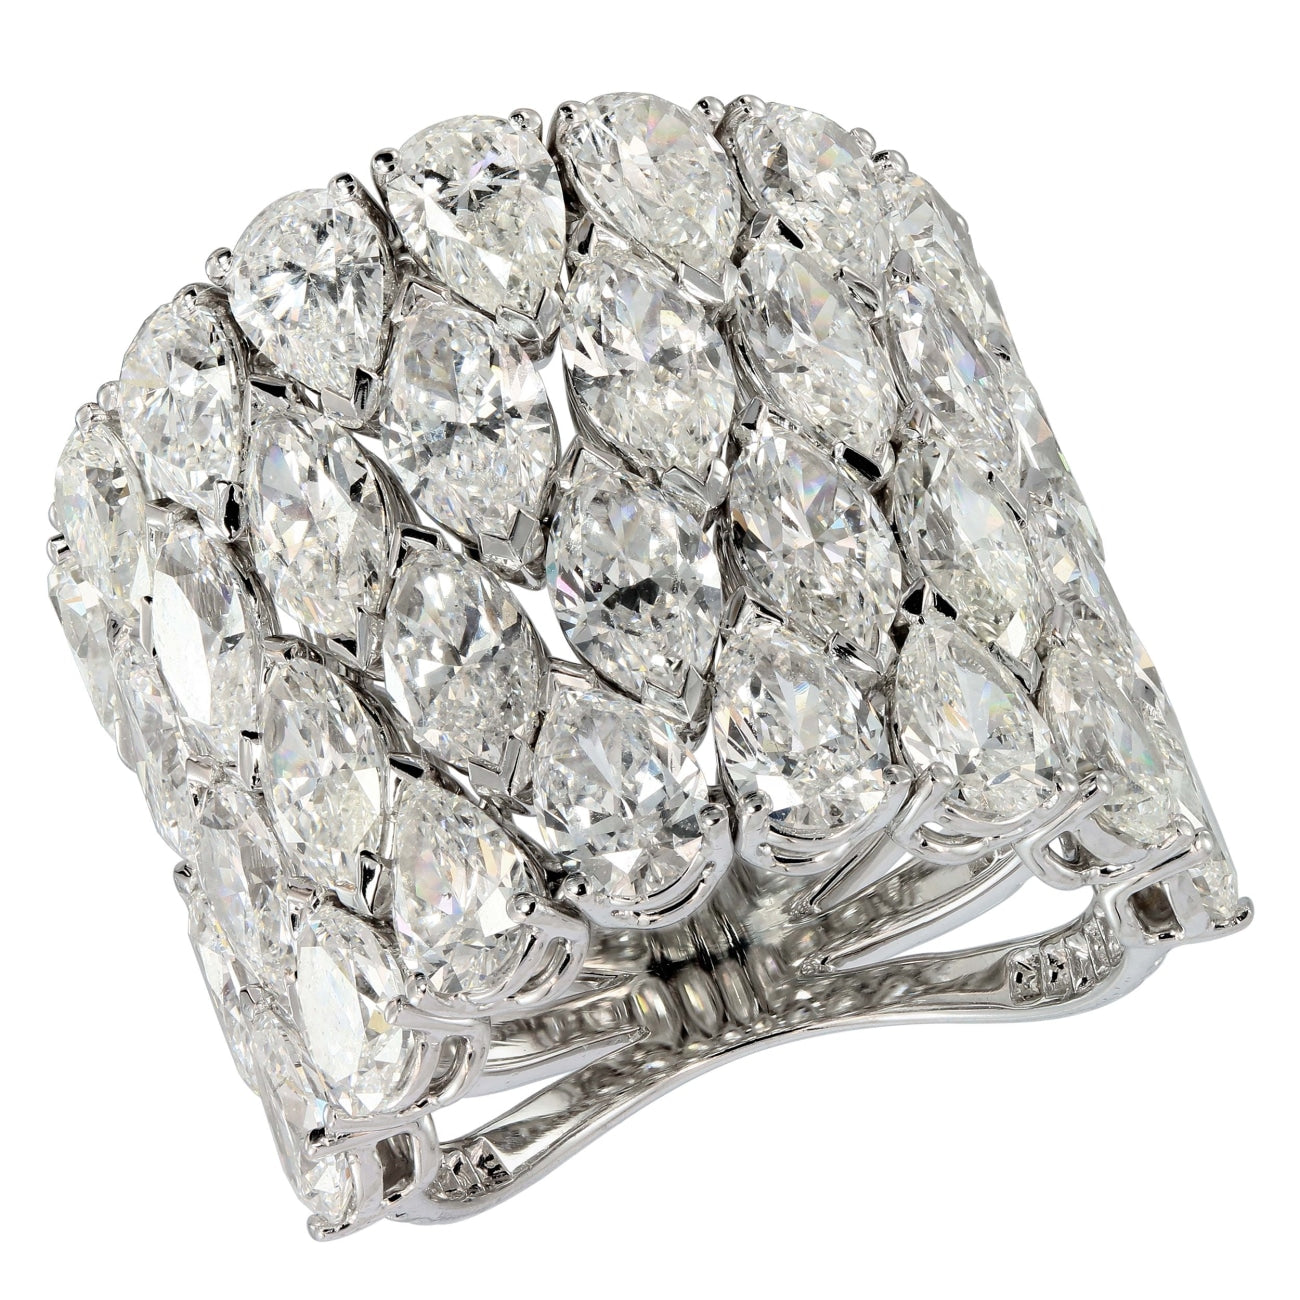 Etho Maria Jewelry - 4 rows of marquis and pear shape ring | Manfredi Jewels